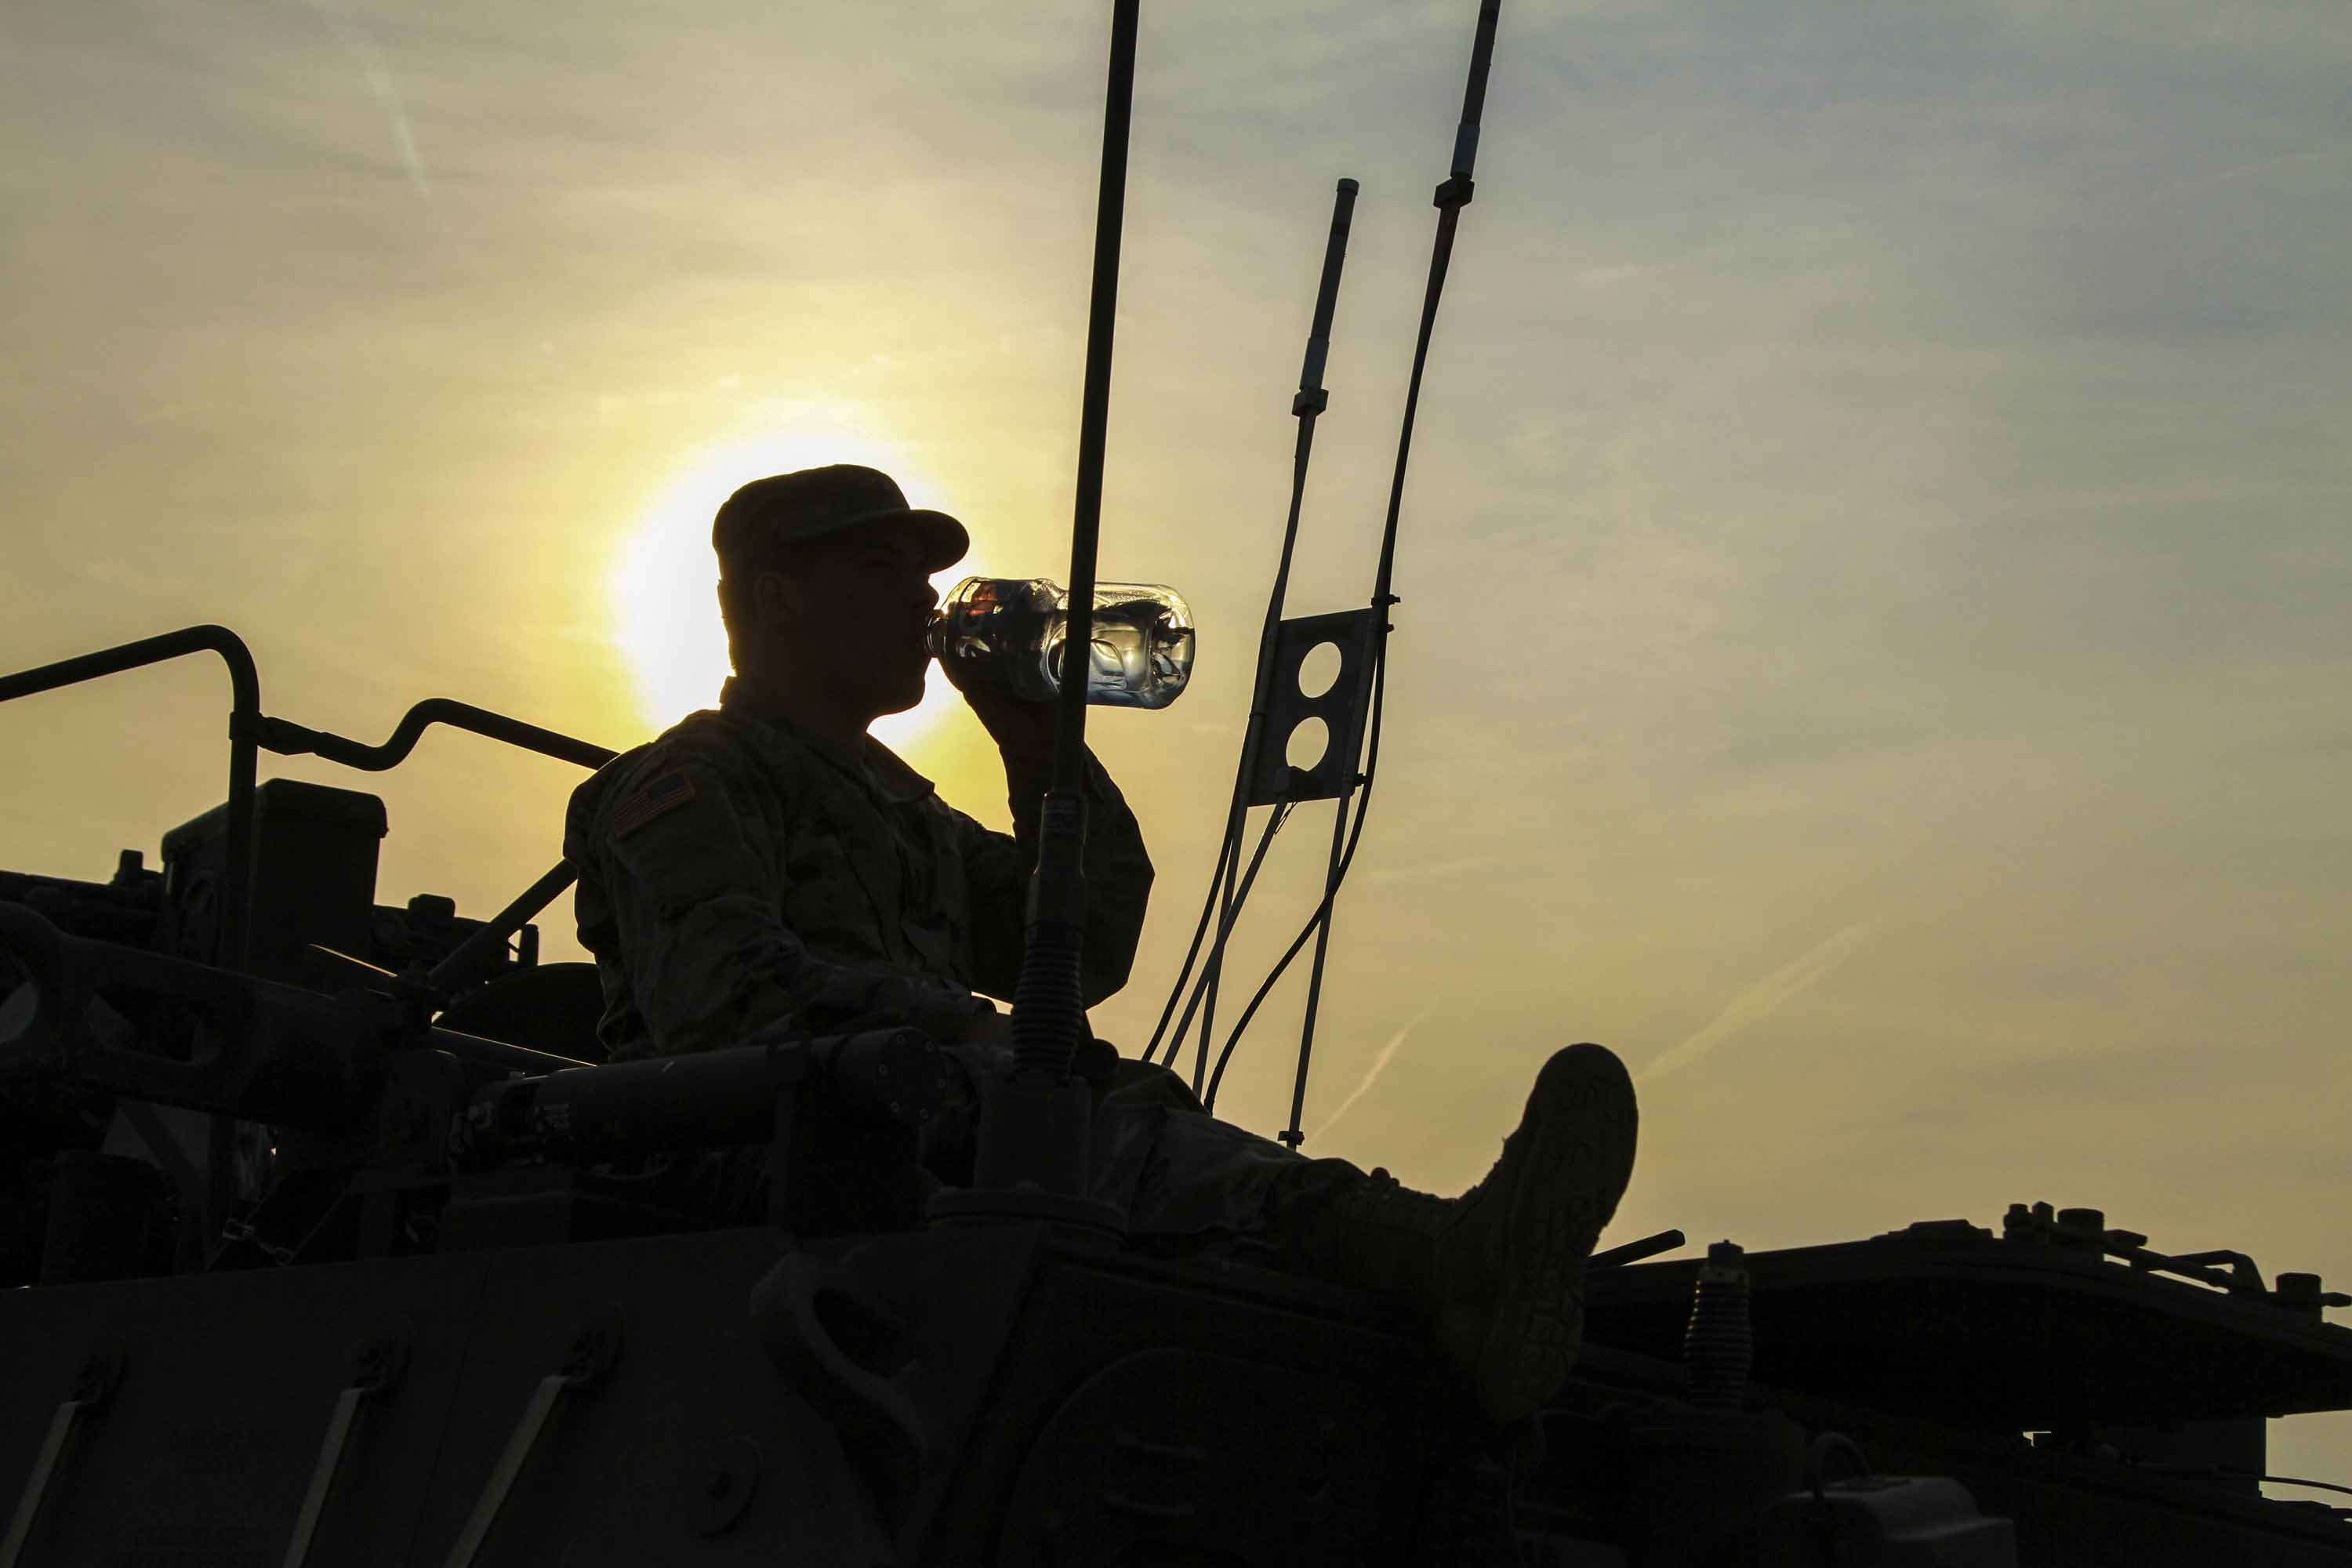 More Than 100 Military Bases Now at Risk of Water Shortages, GAO Finds